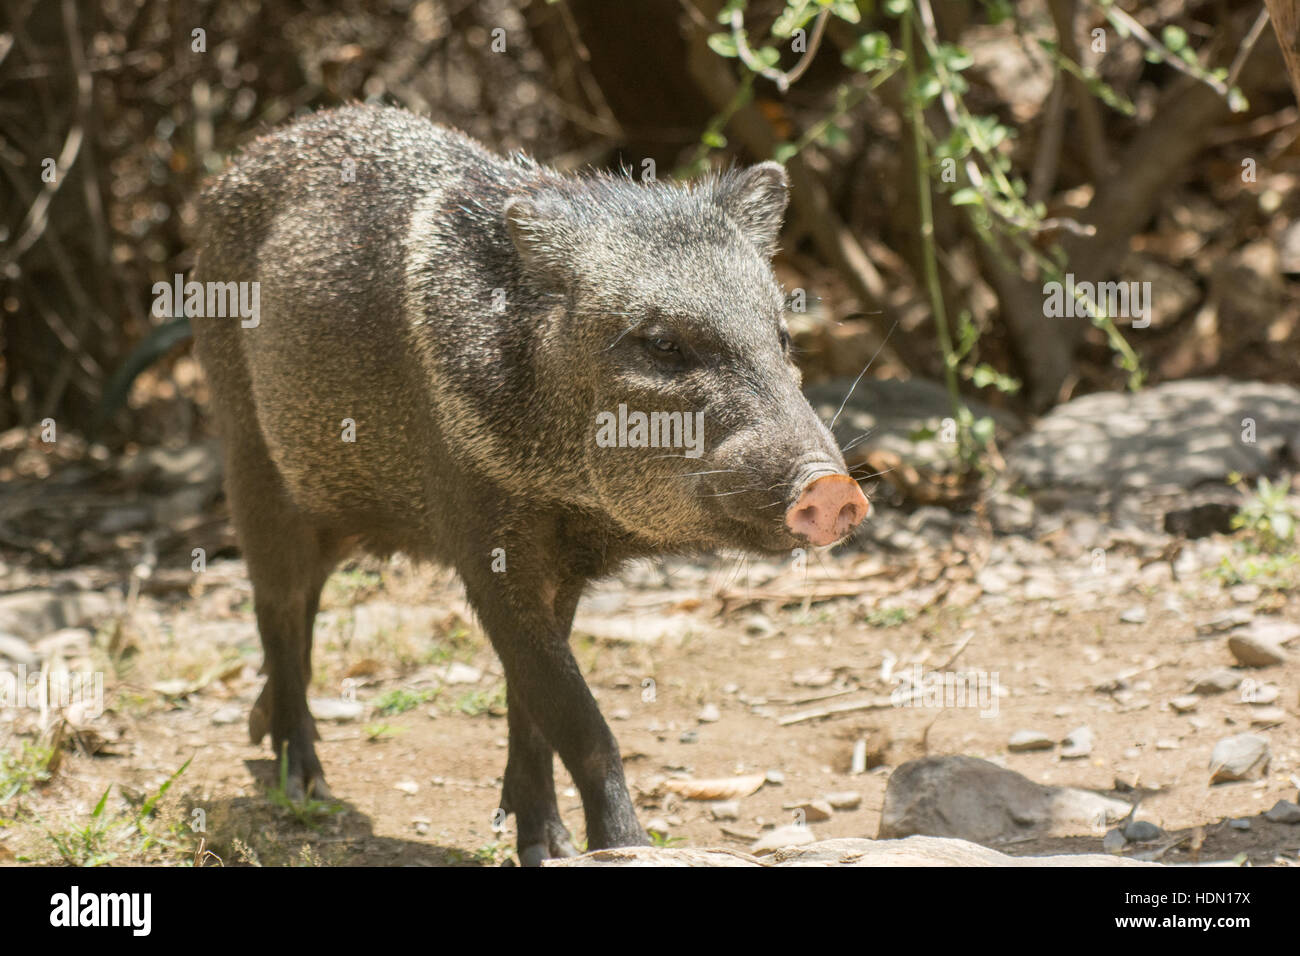 Collared Peccary (Pecari tajacu) in dry forest habitat at Chaparri Reserve in Chongoyape in northern Peru Stock Photo